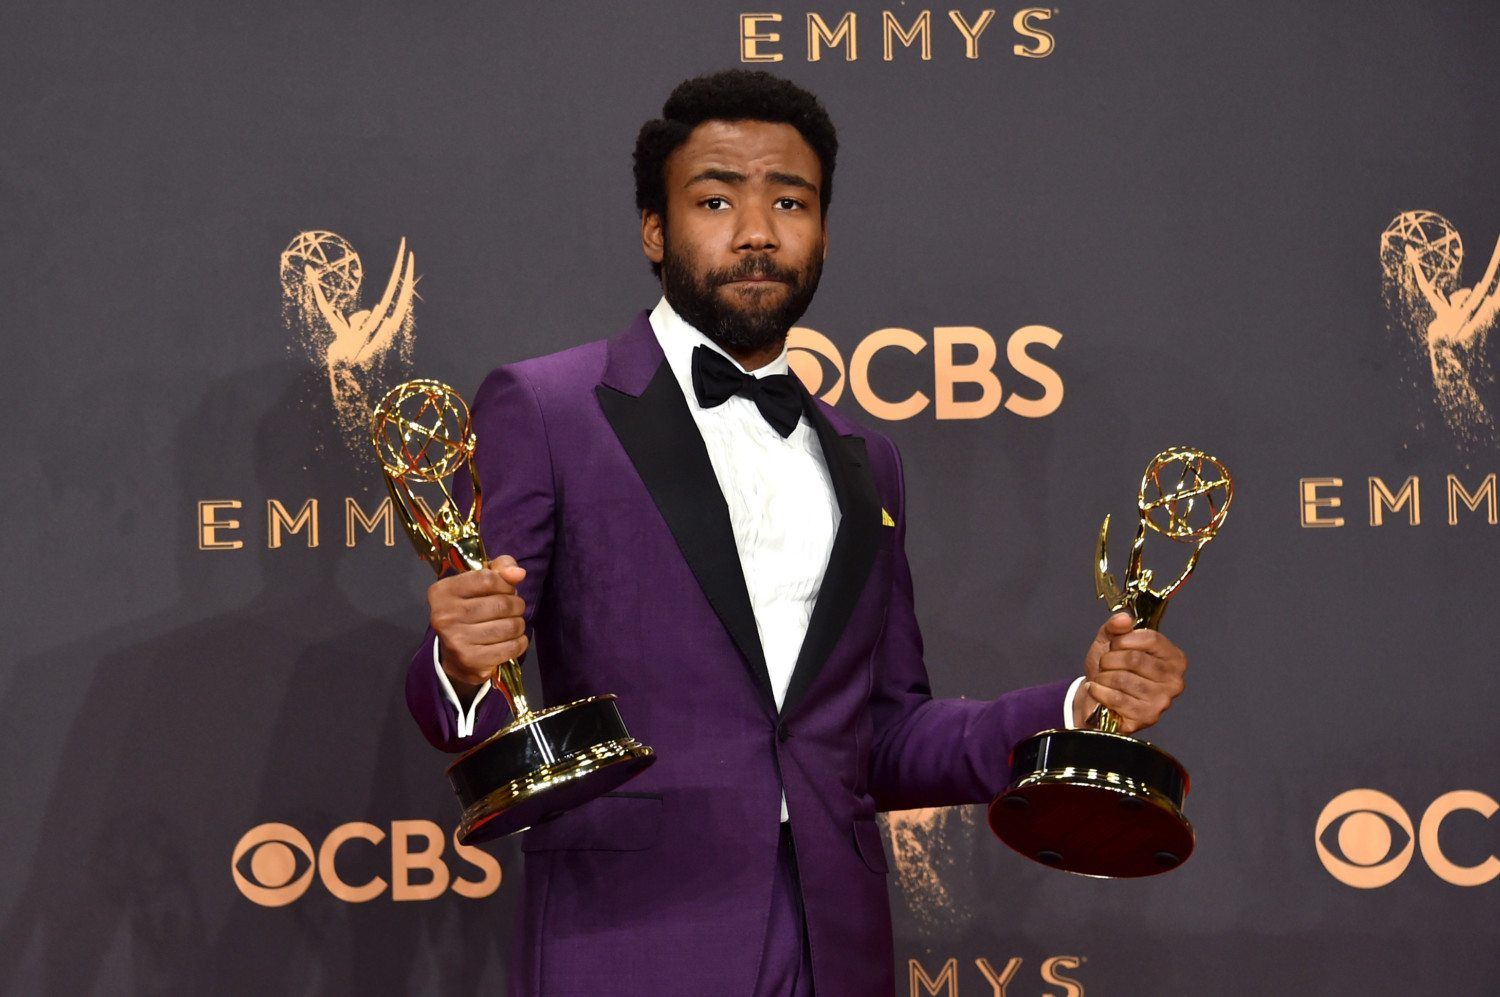 Donald Glover Emmys photo